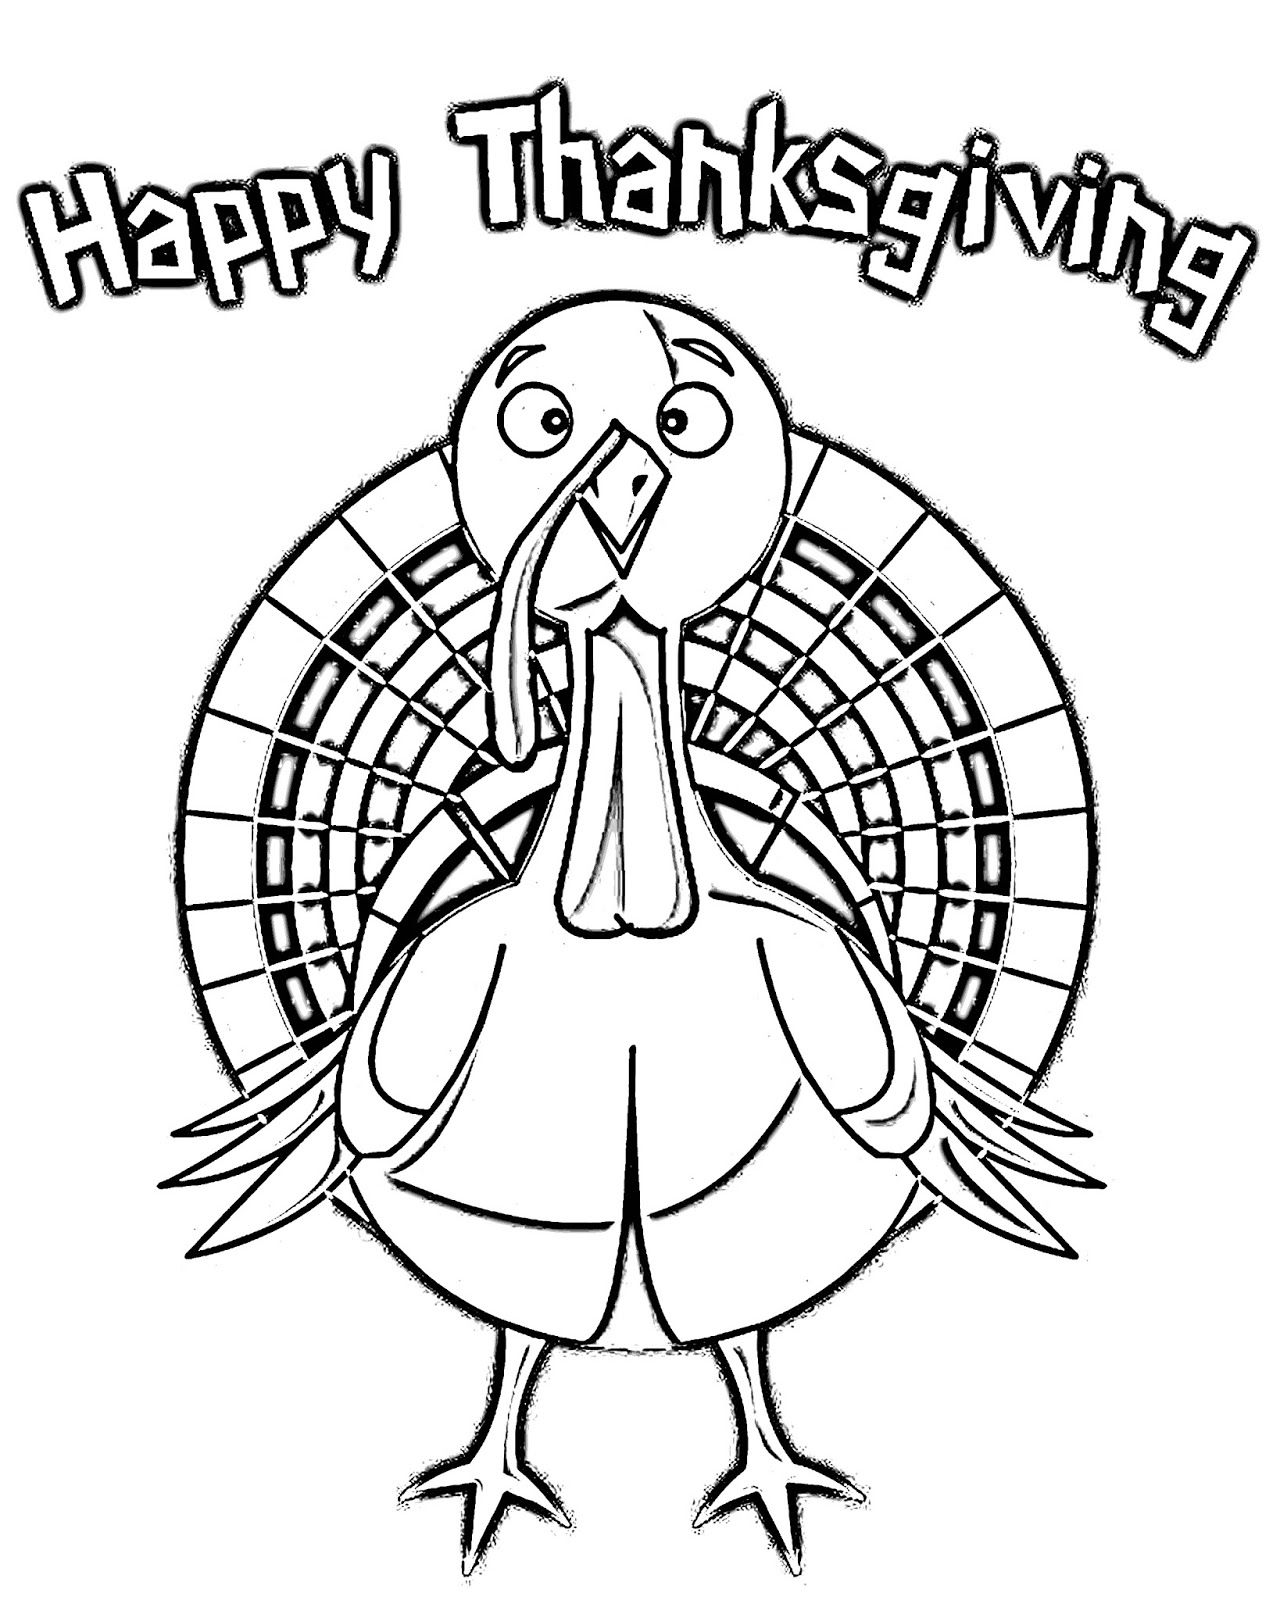 Thanksgiving Coloring Page Happy Thanksgiving Turkey Thanksgiving Coloring Pages Coloring Pages Happy Thanksgiving Turkey